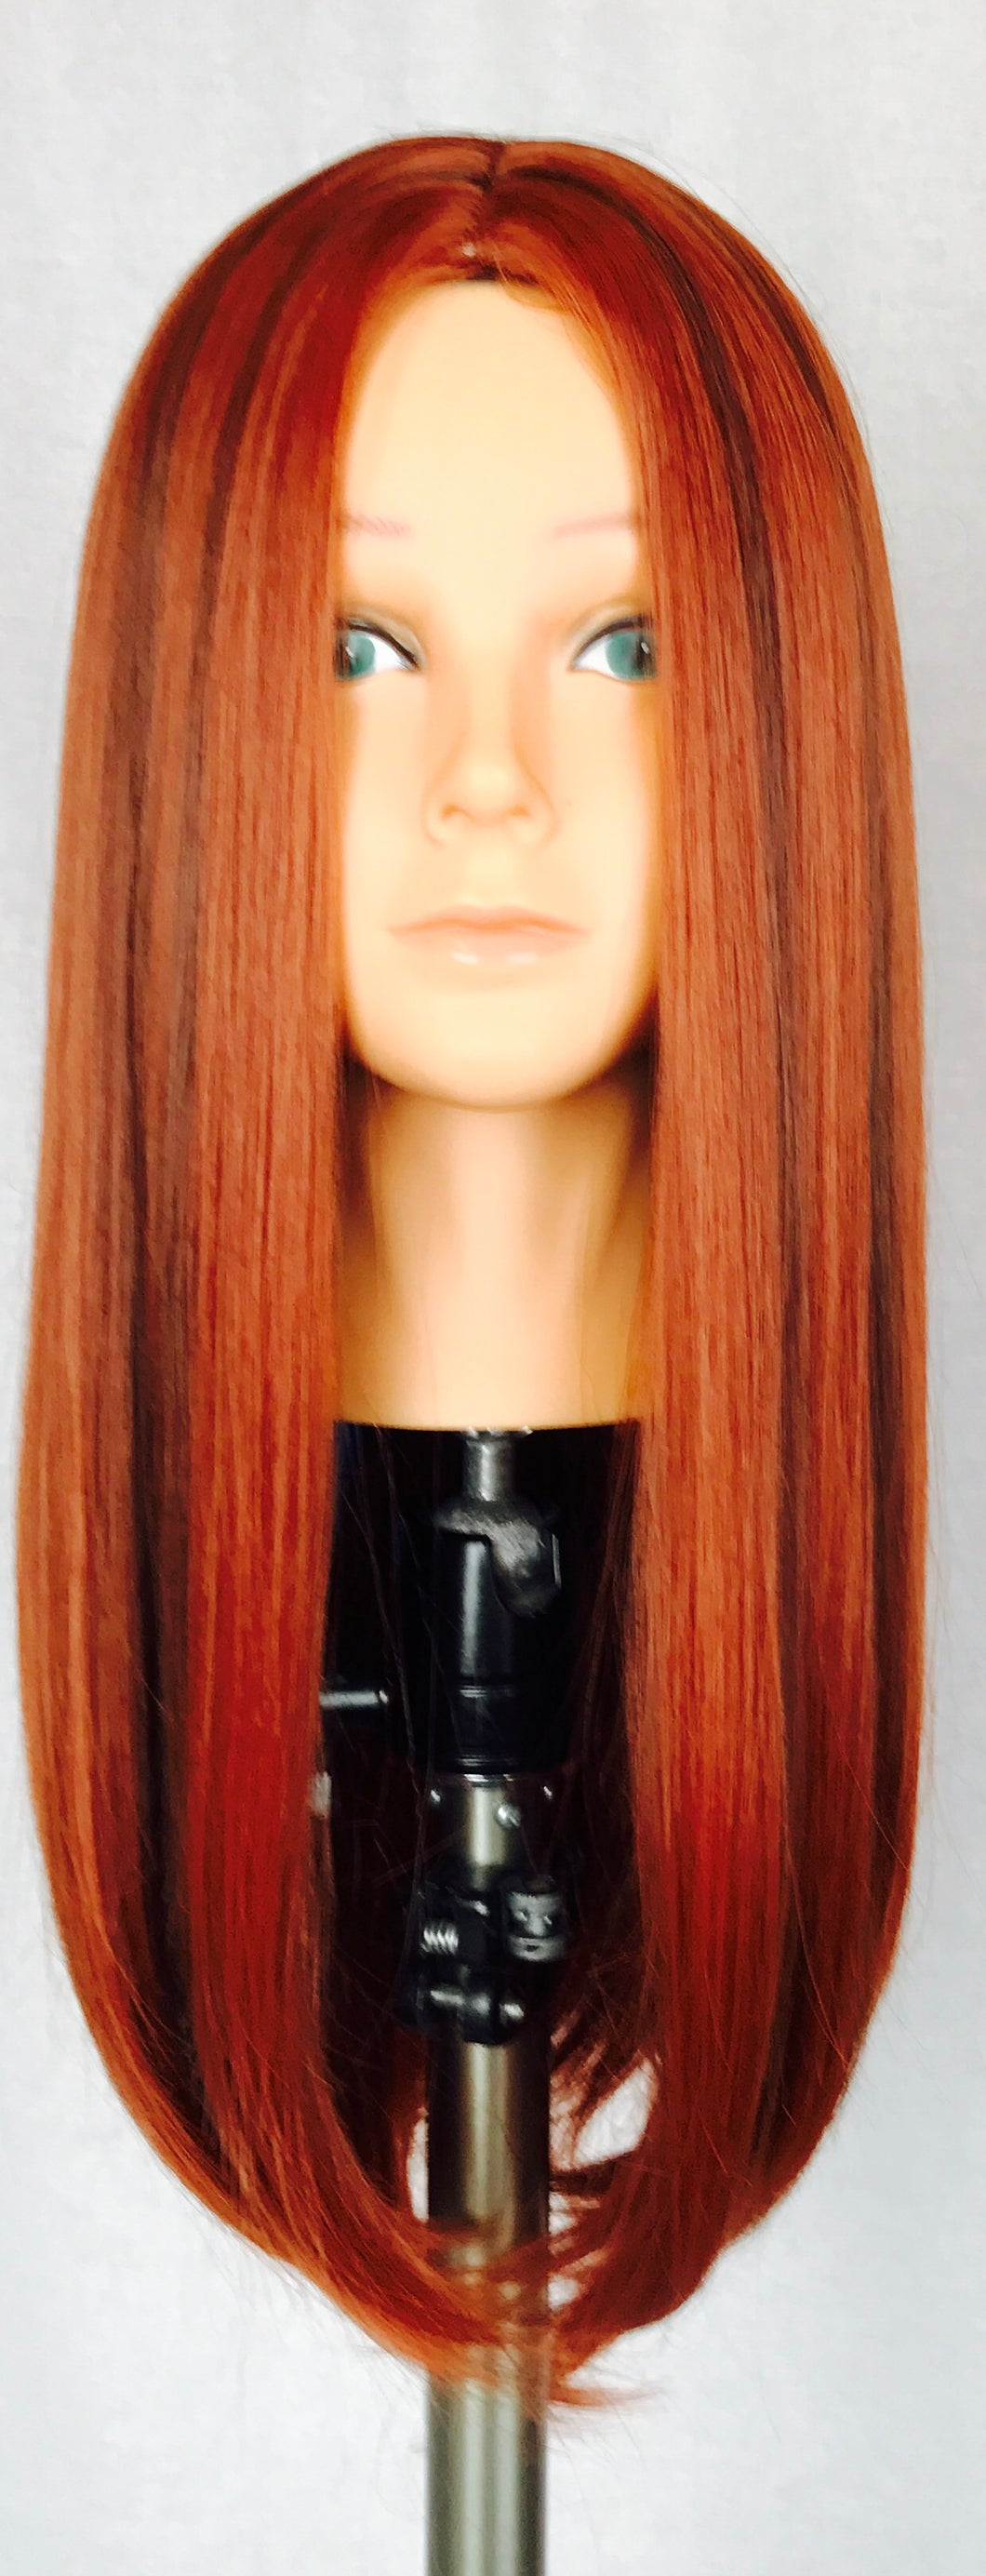 Straight auburn with brown streak, center part